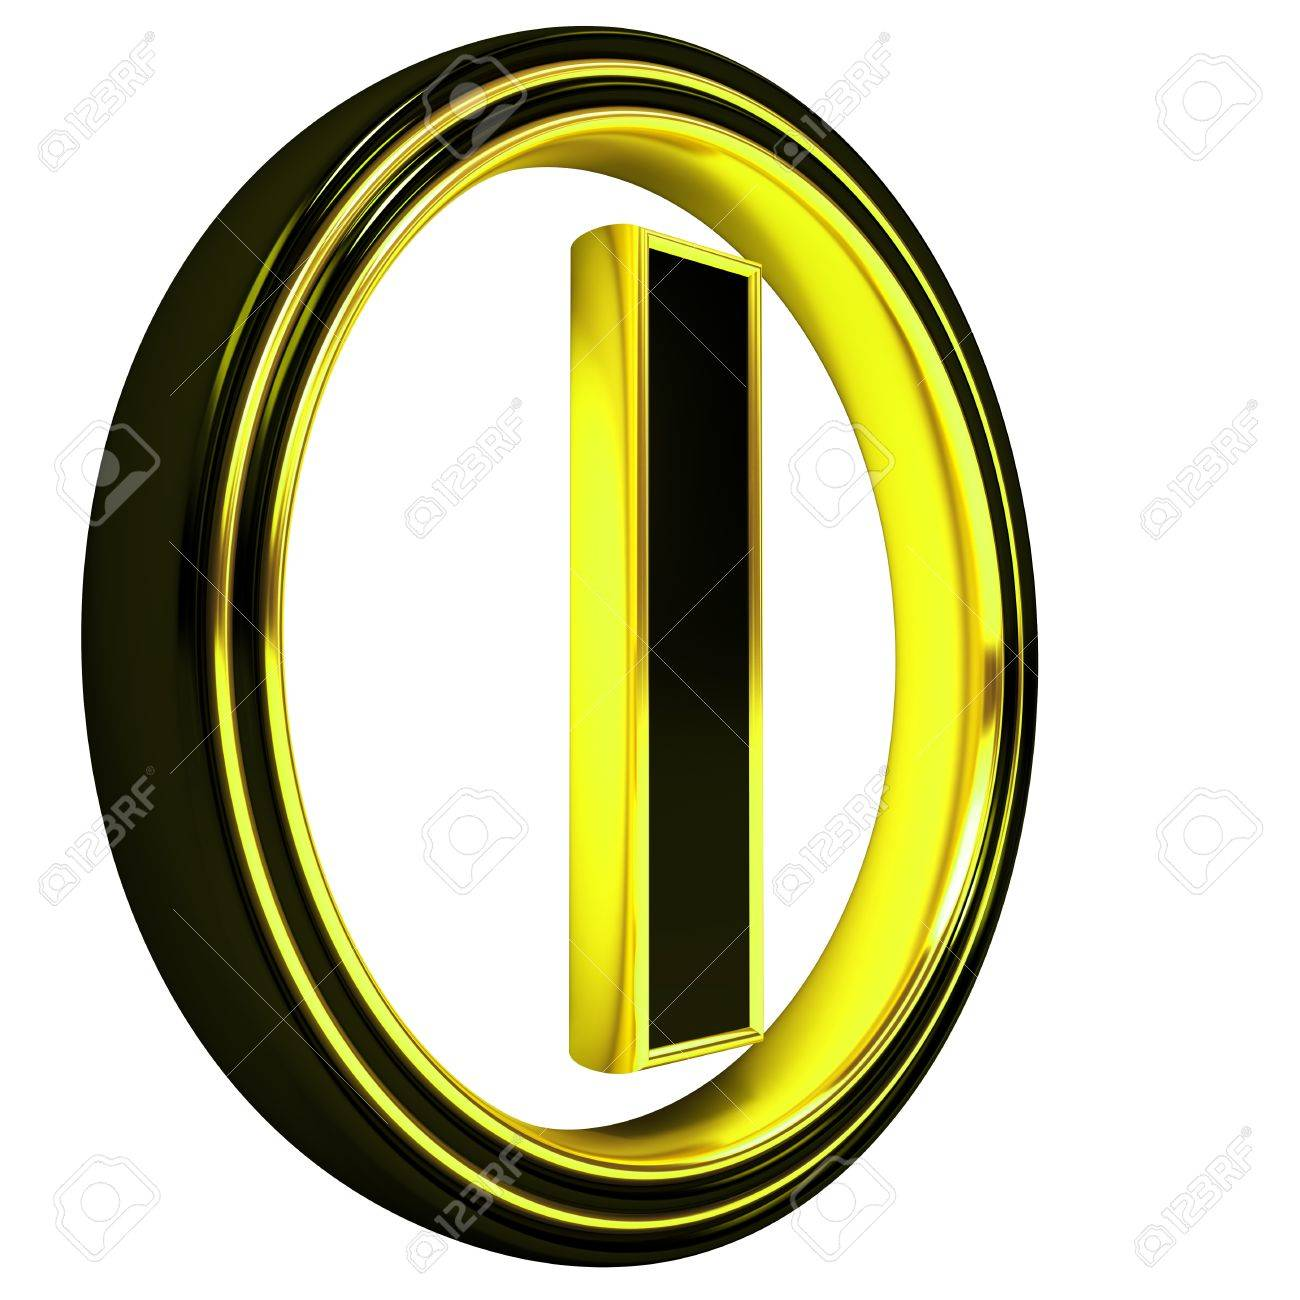 3D Letter i in circle. Black gold metal Stock Photo - 8892306